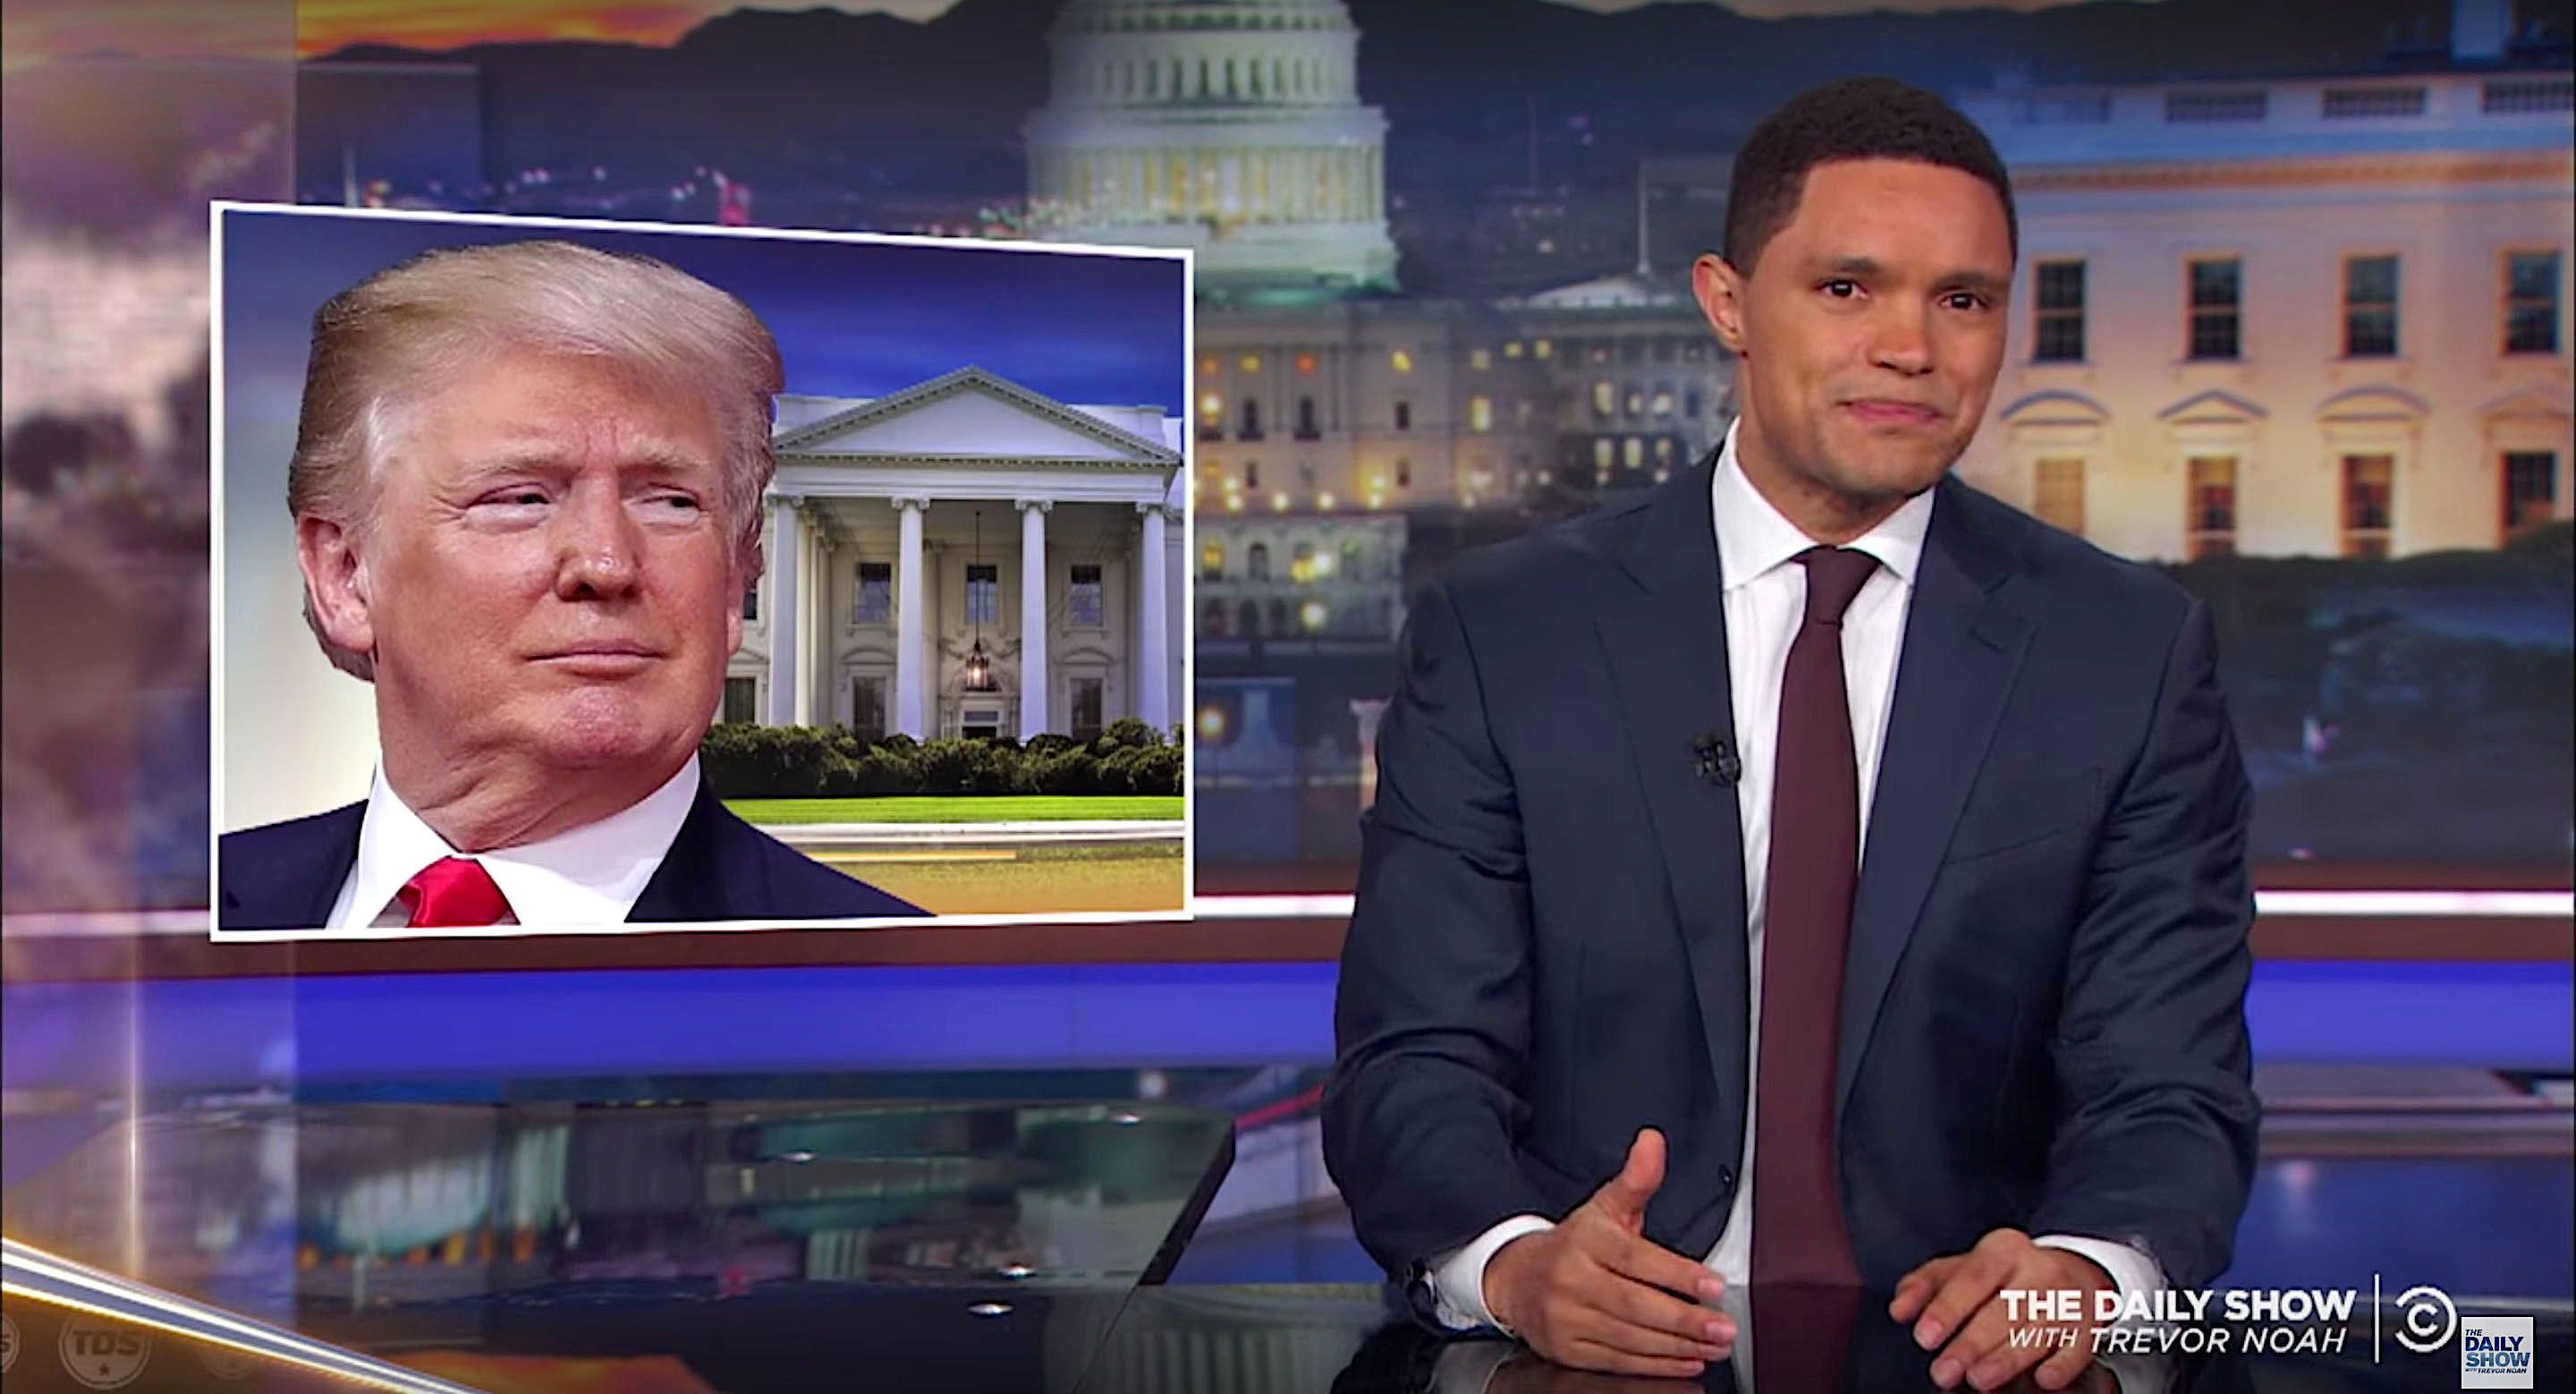 Trevor Noah calls out President Donald Trump on keeping kids in cages